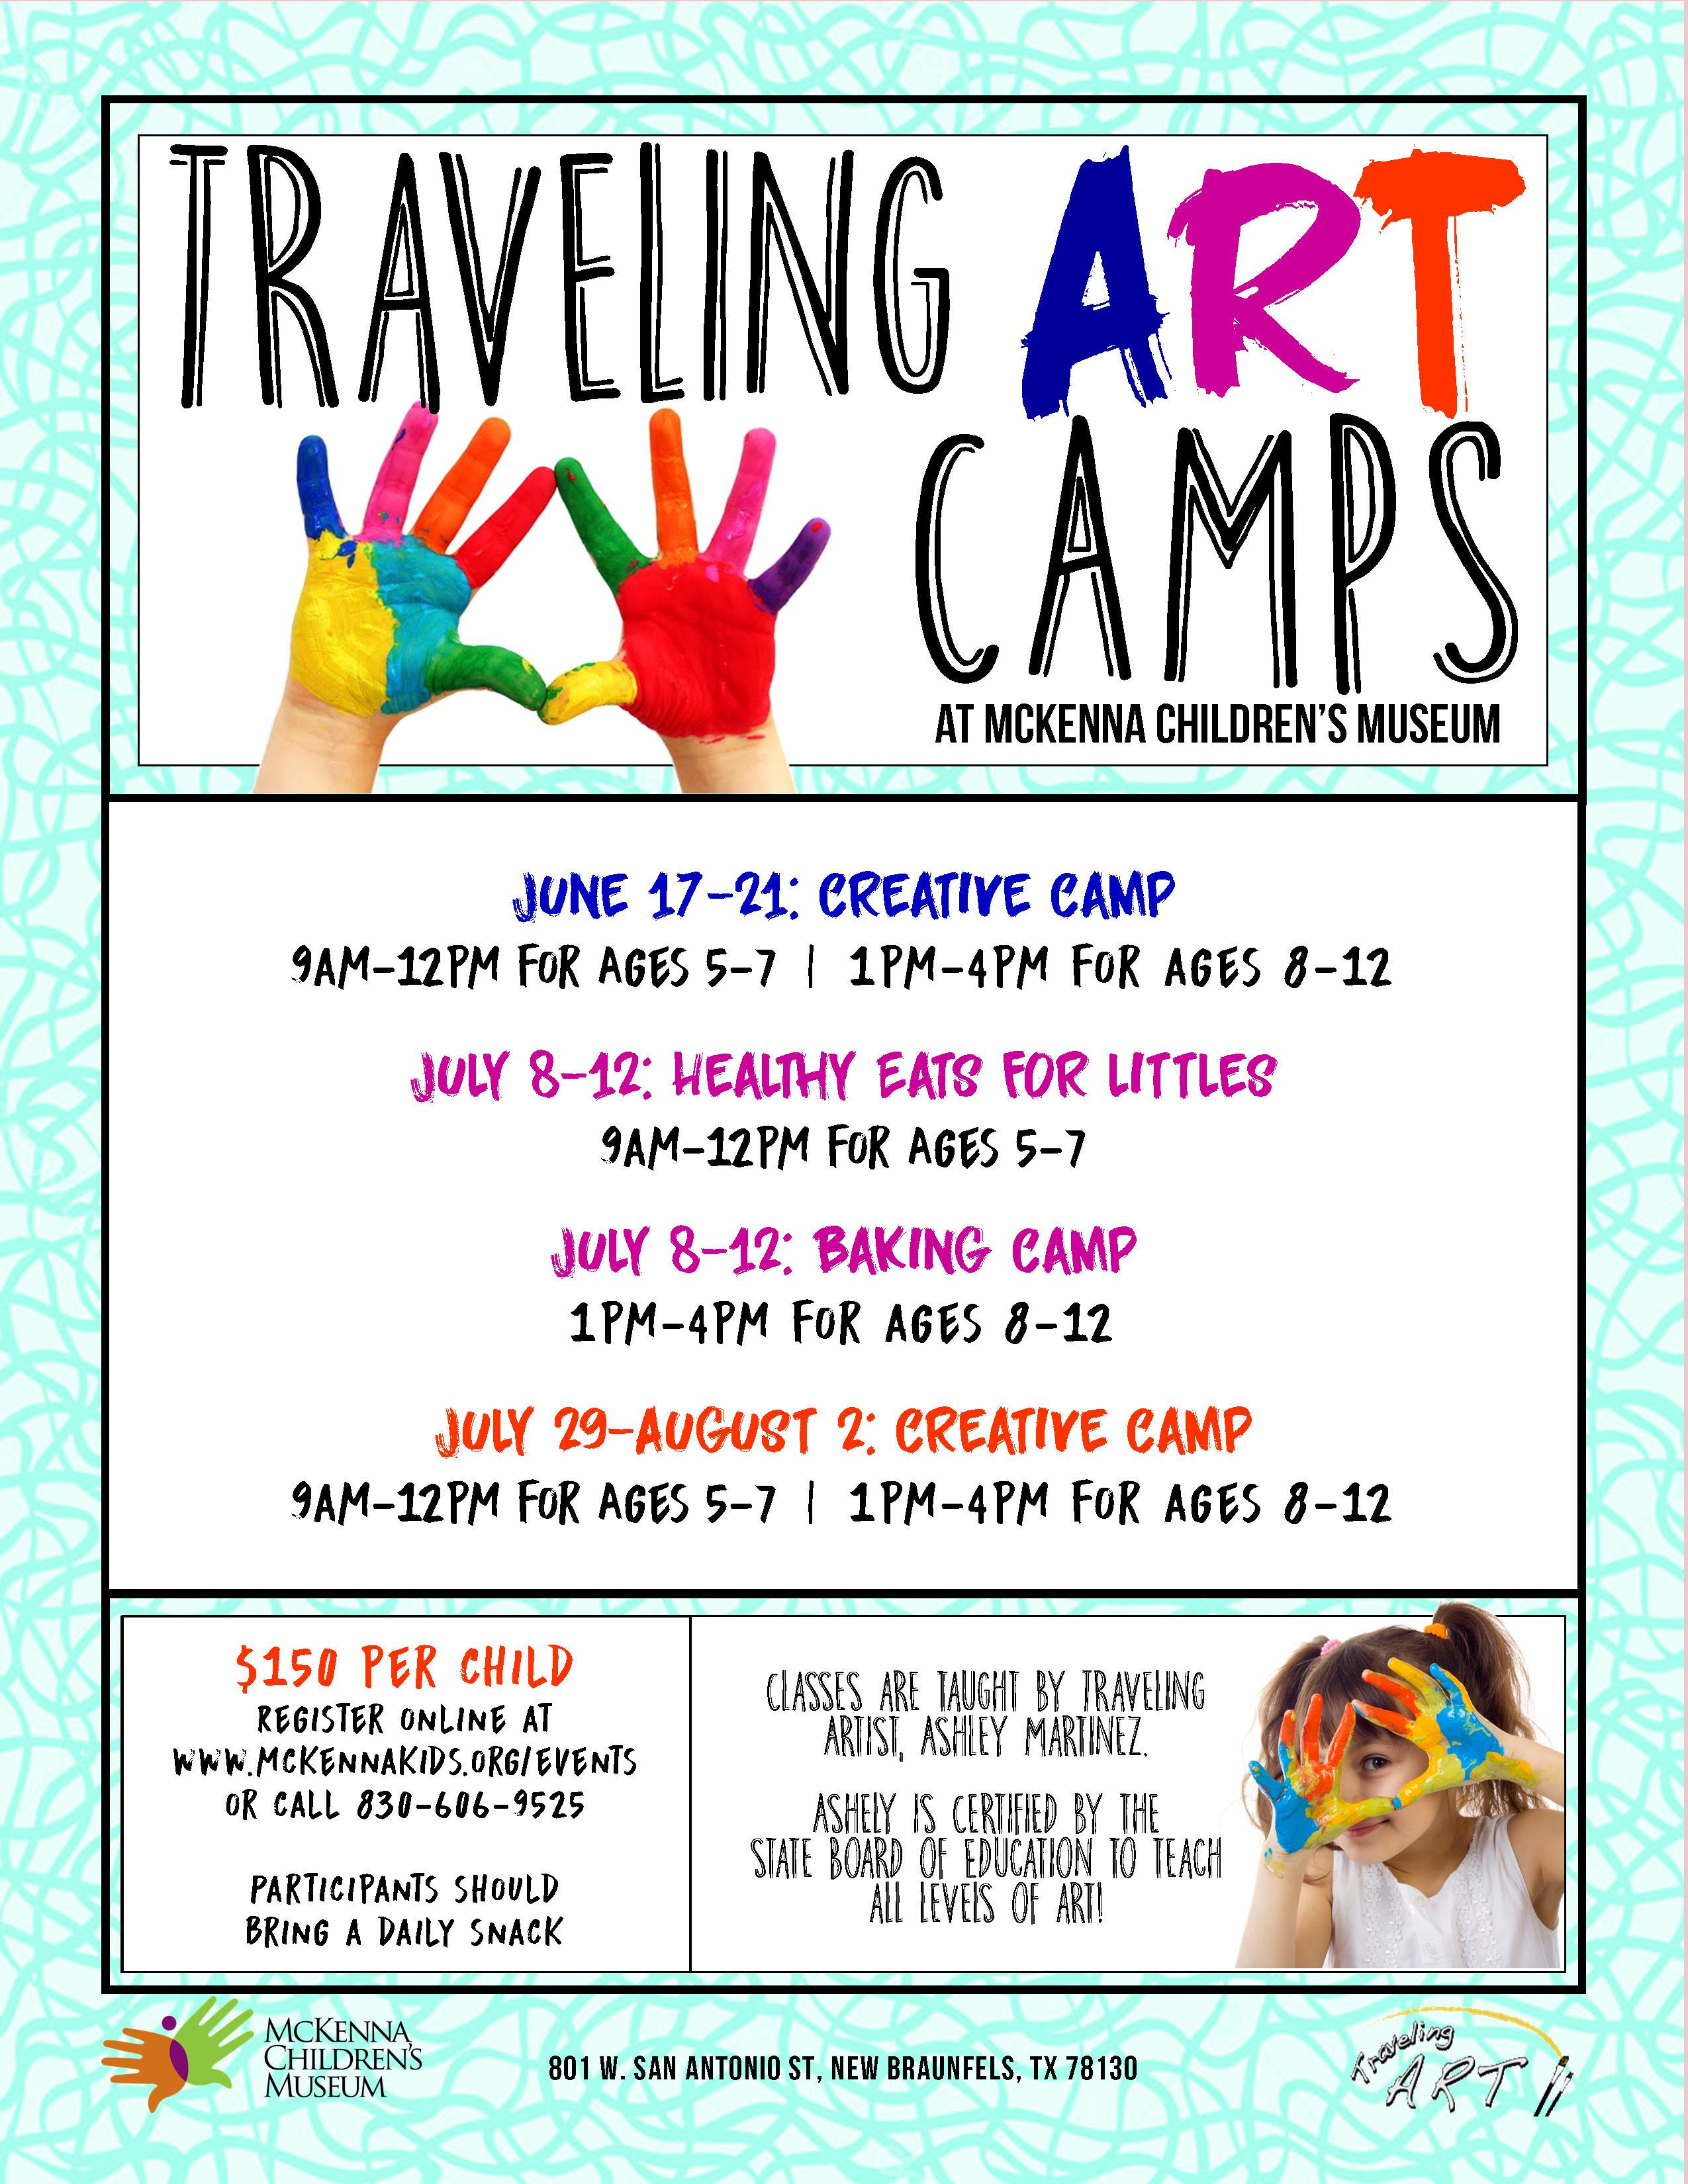 downtown New Braunfels traveling art camps